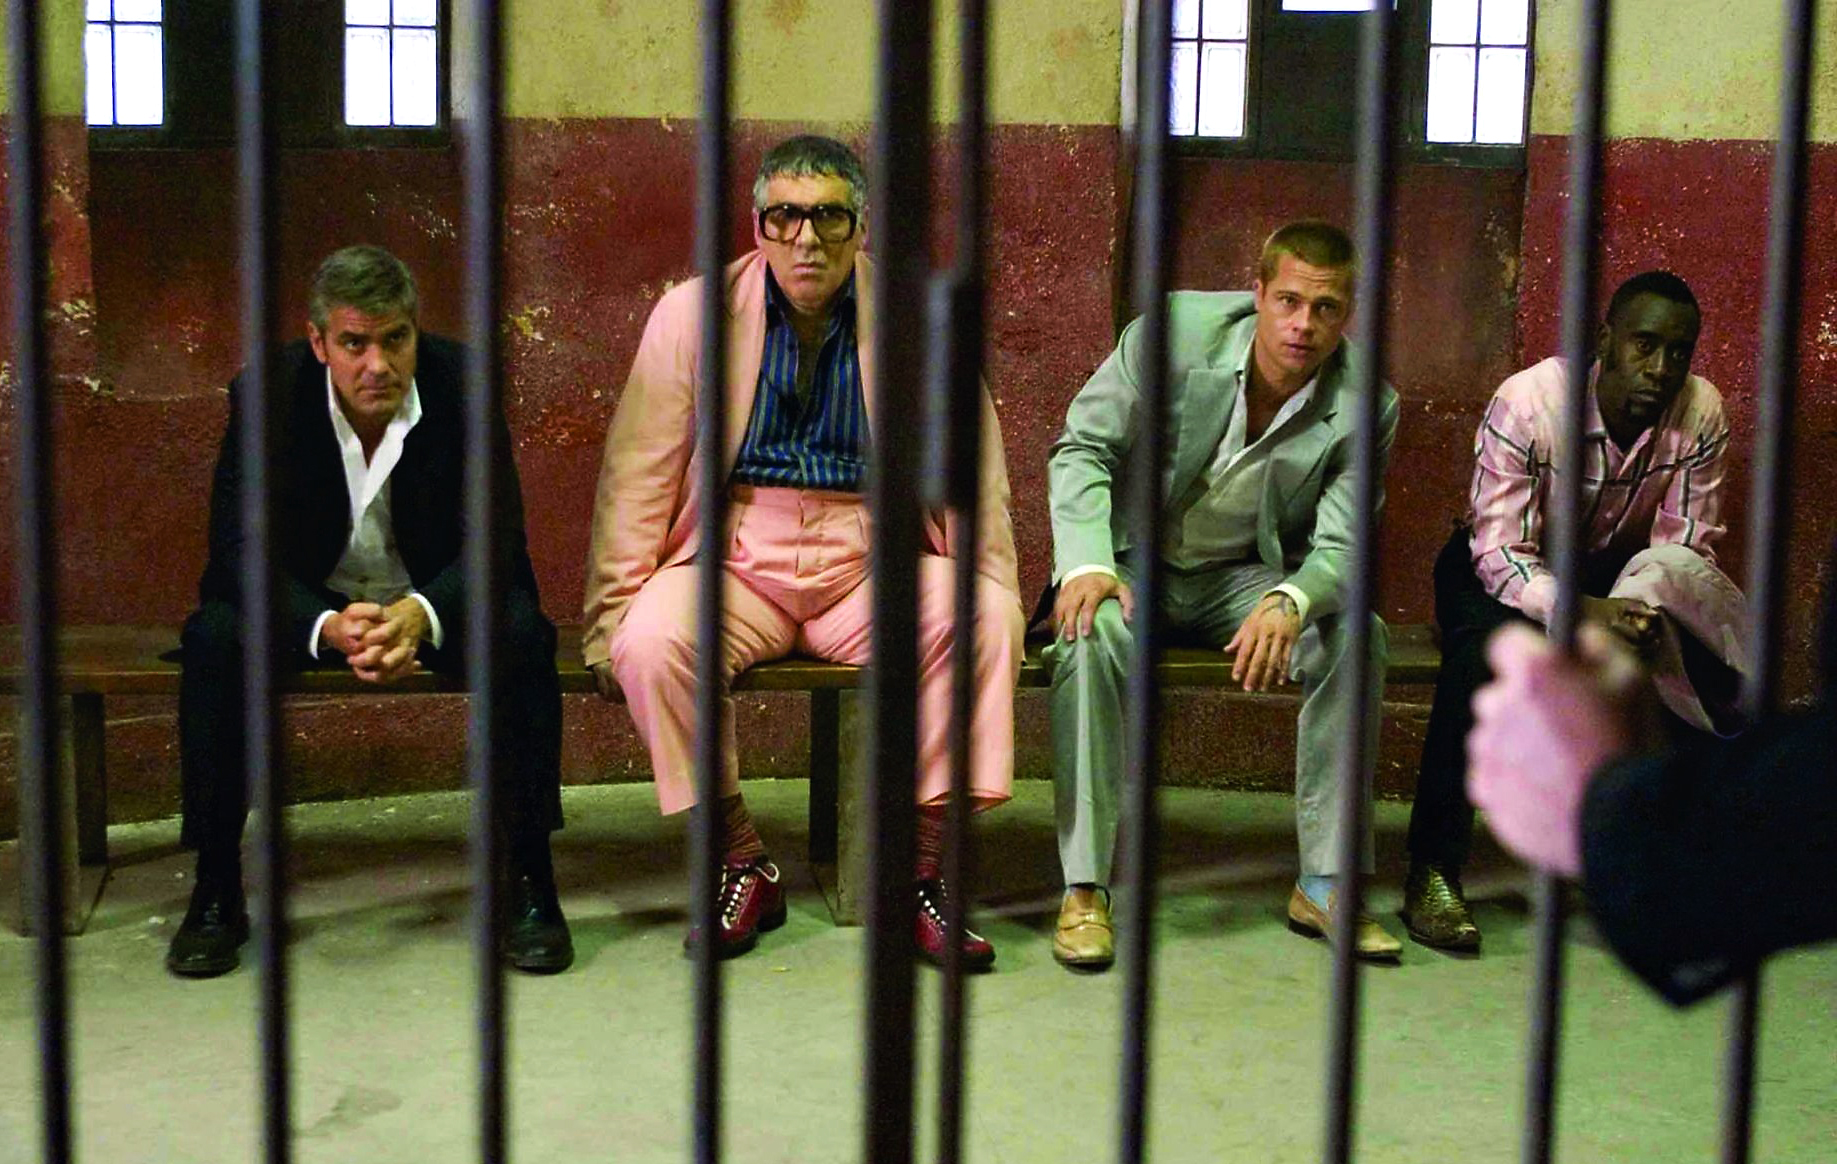 Ocean�s Eleven Friends Are Behind Bars